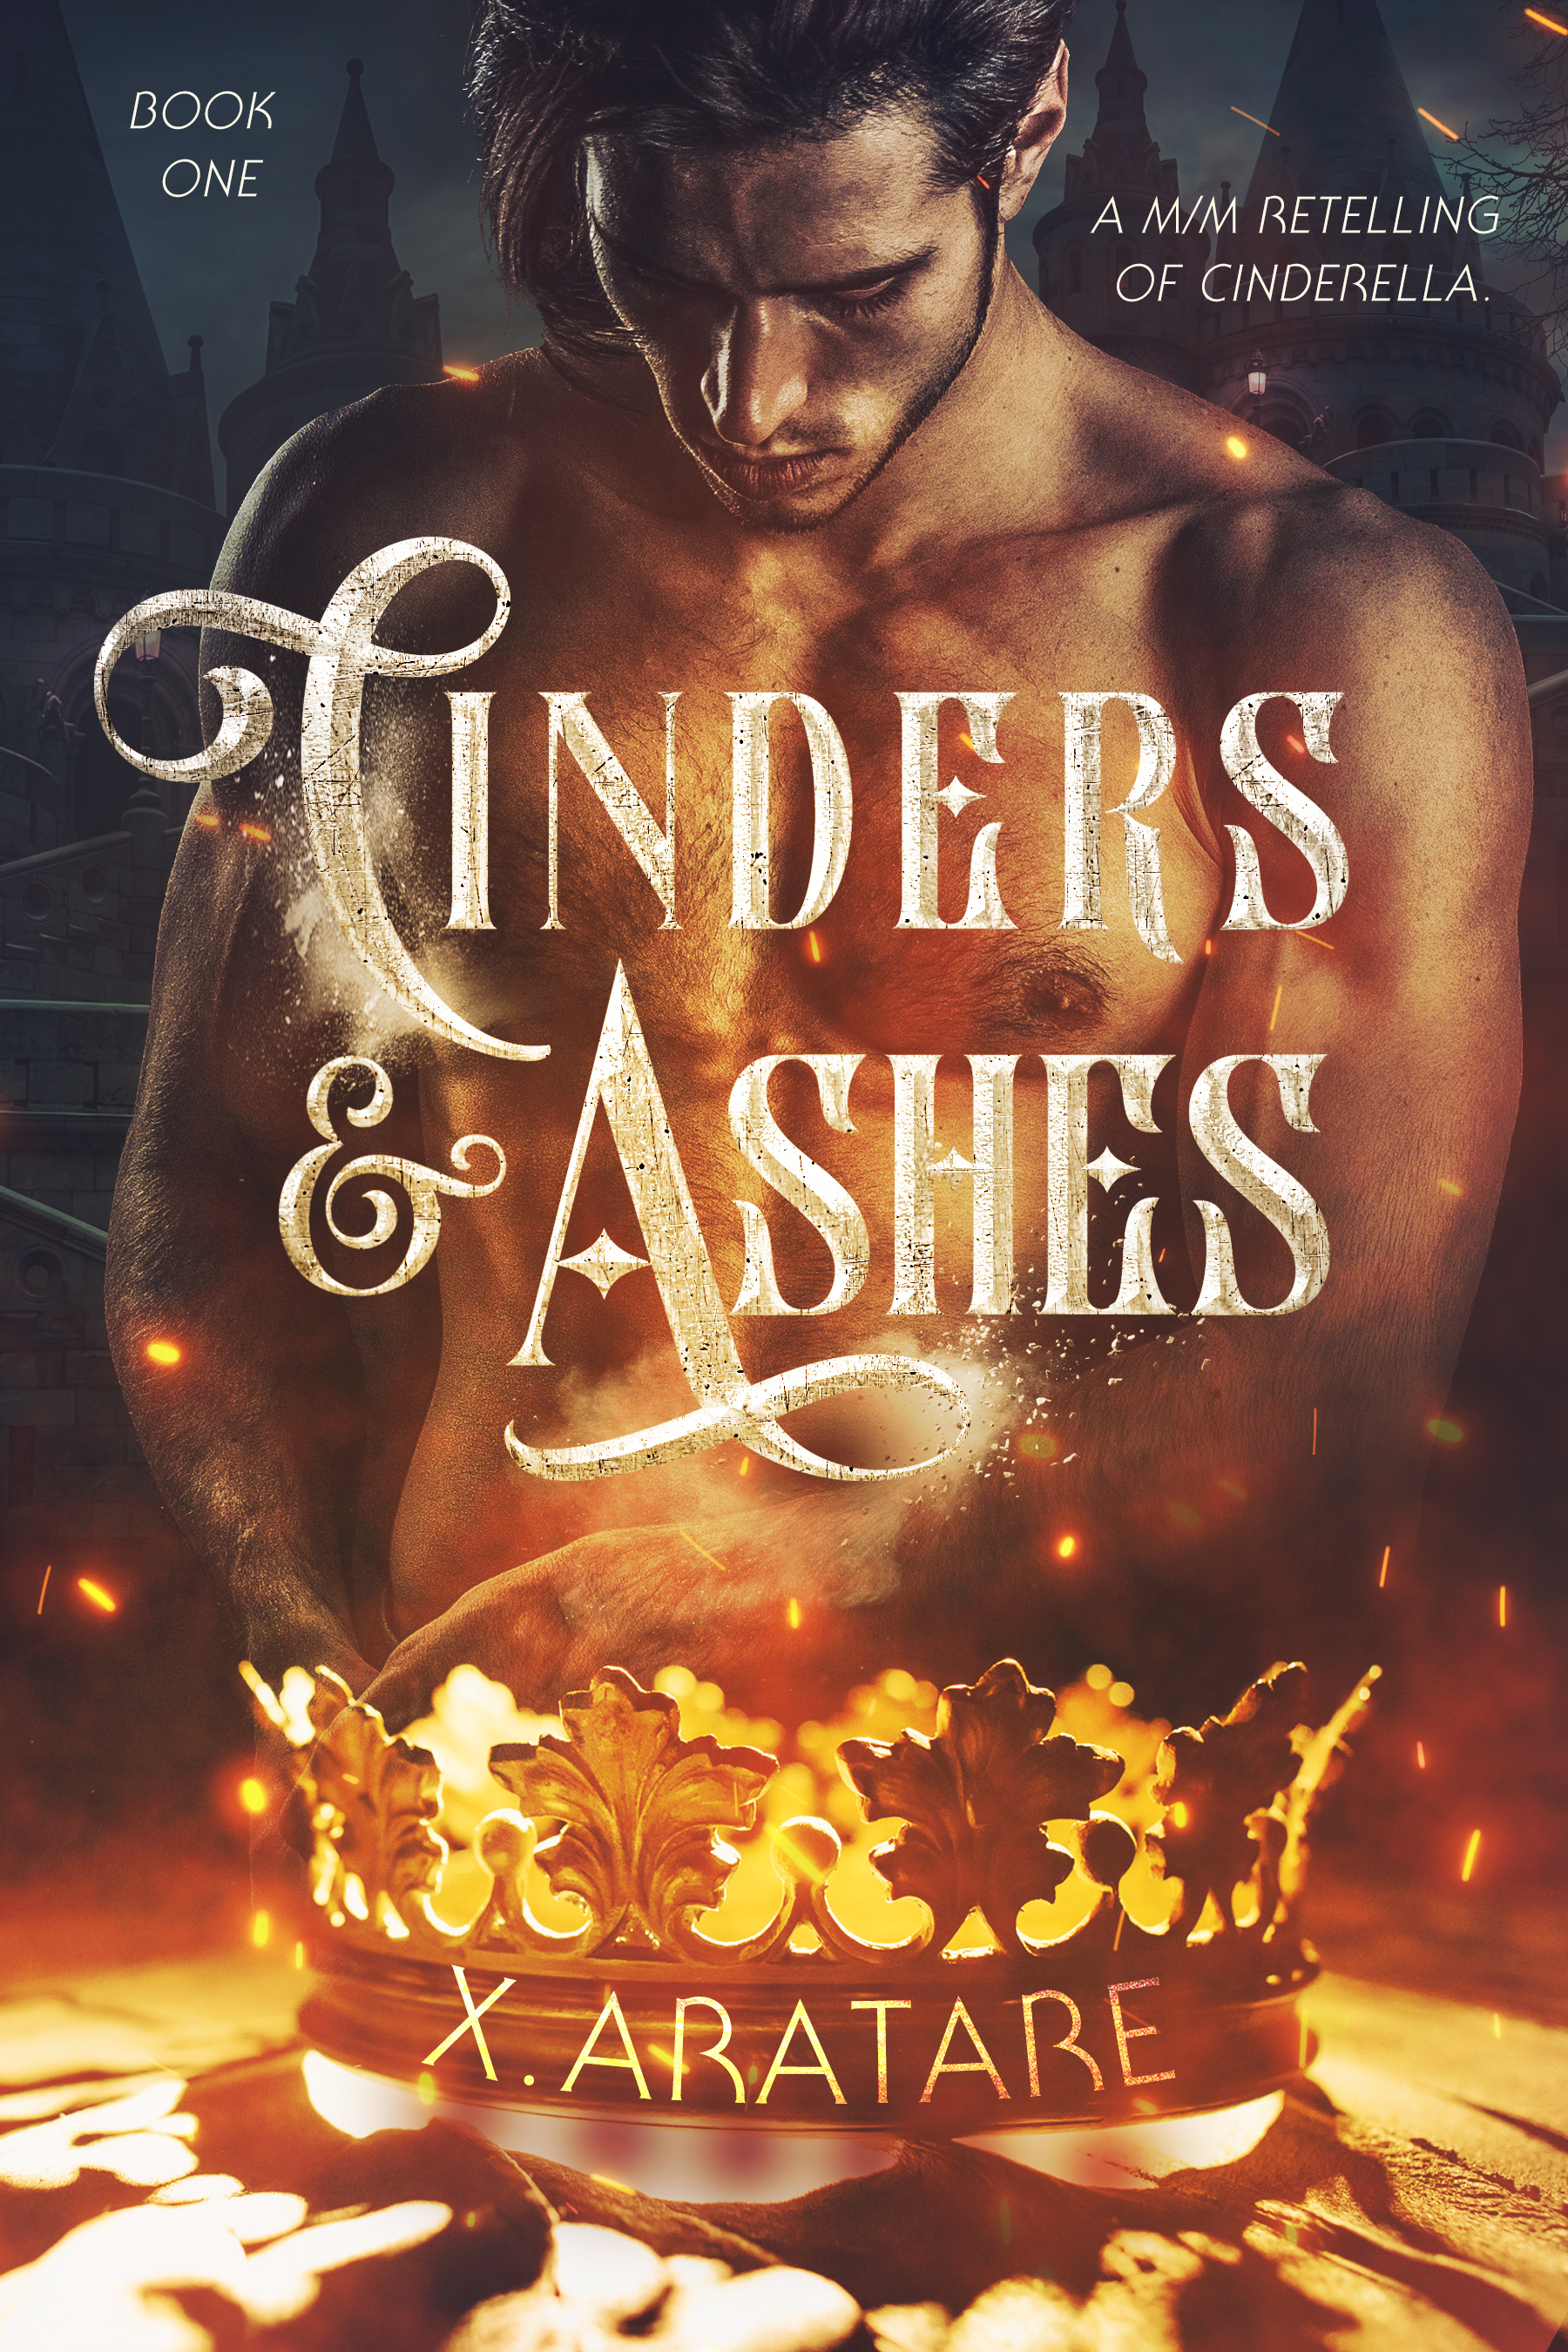 BookOne CindersandAshes